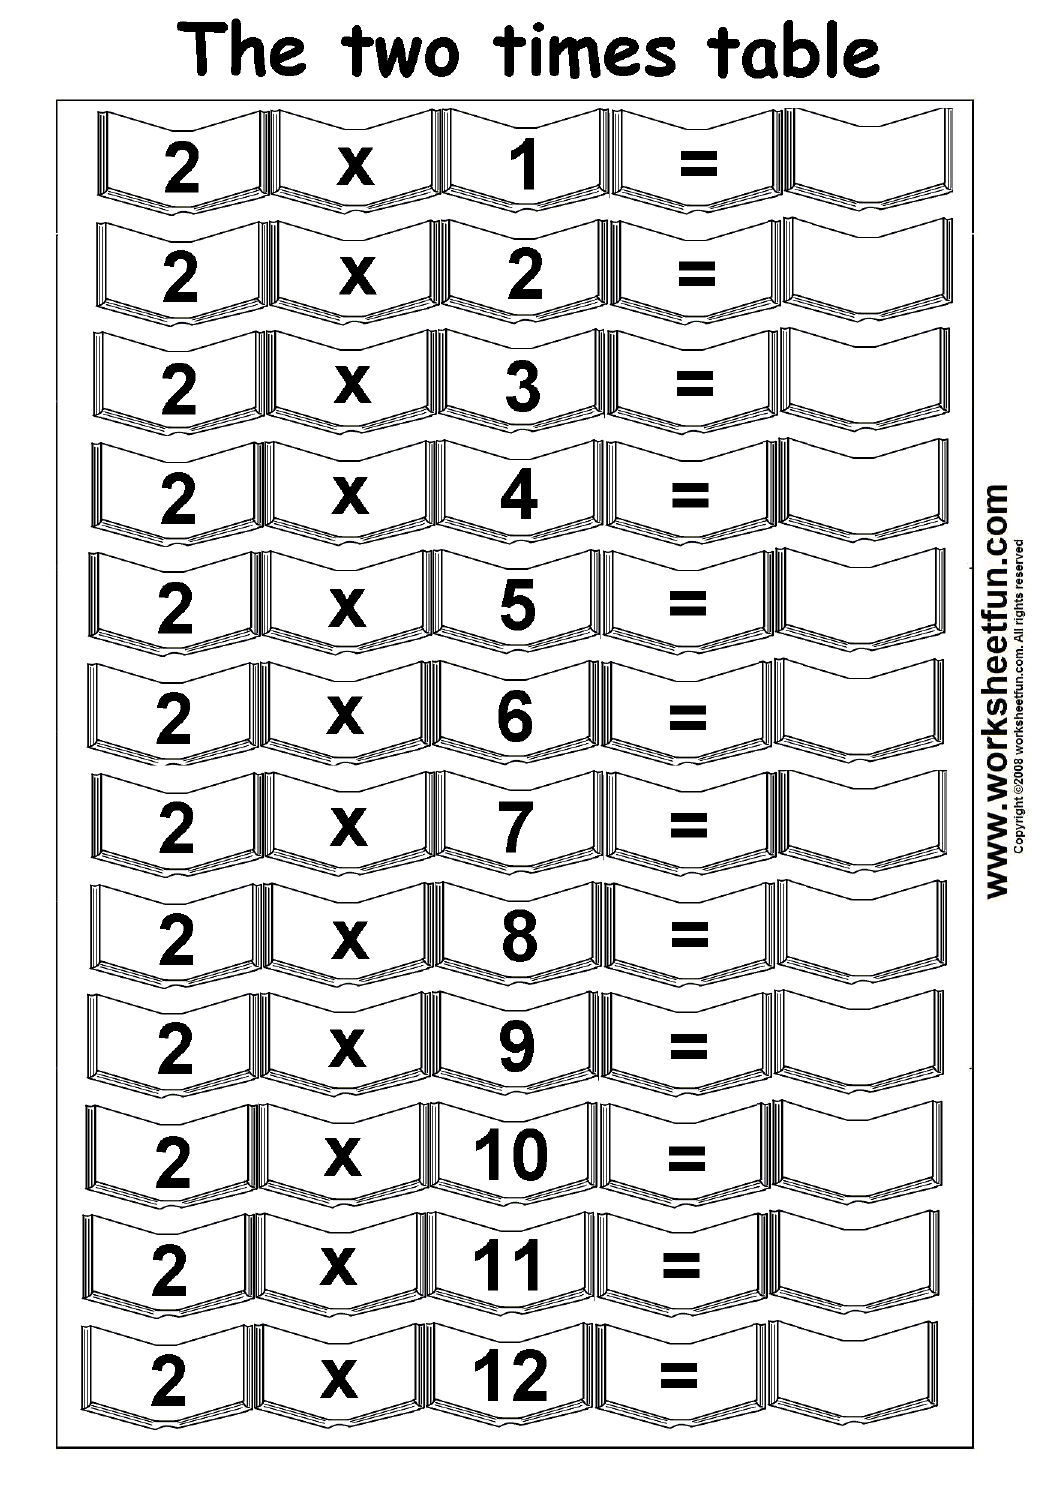 Multiplication Times Tables Worksheets – 2, 3, 4 & 5 Times